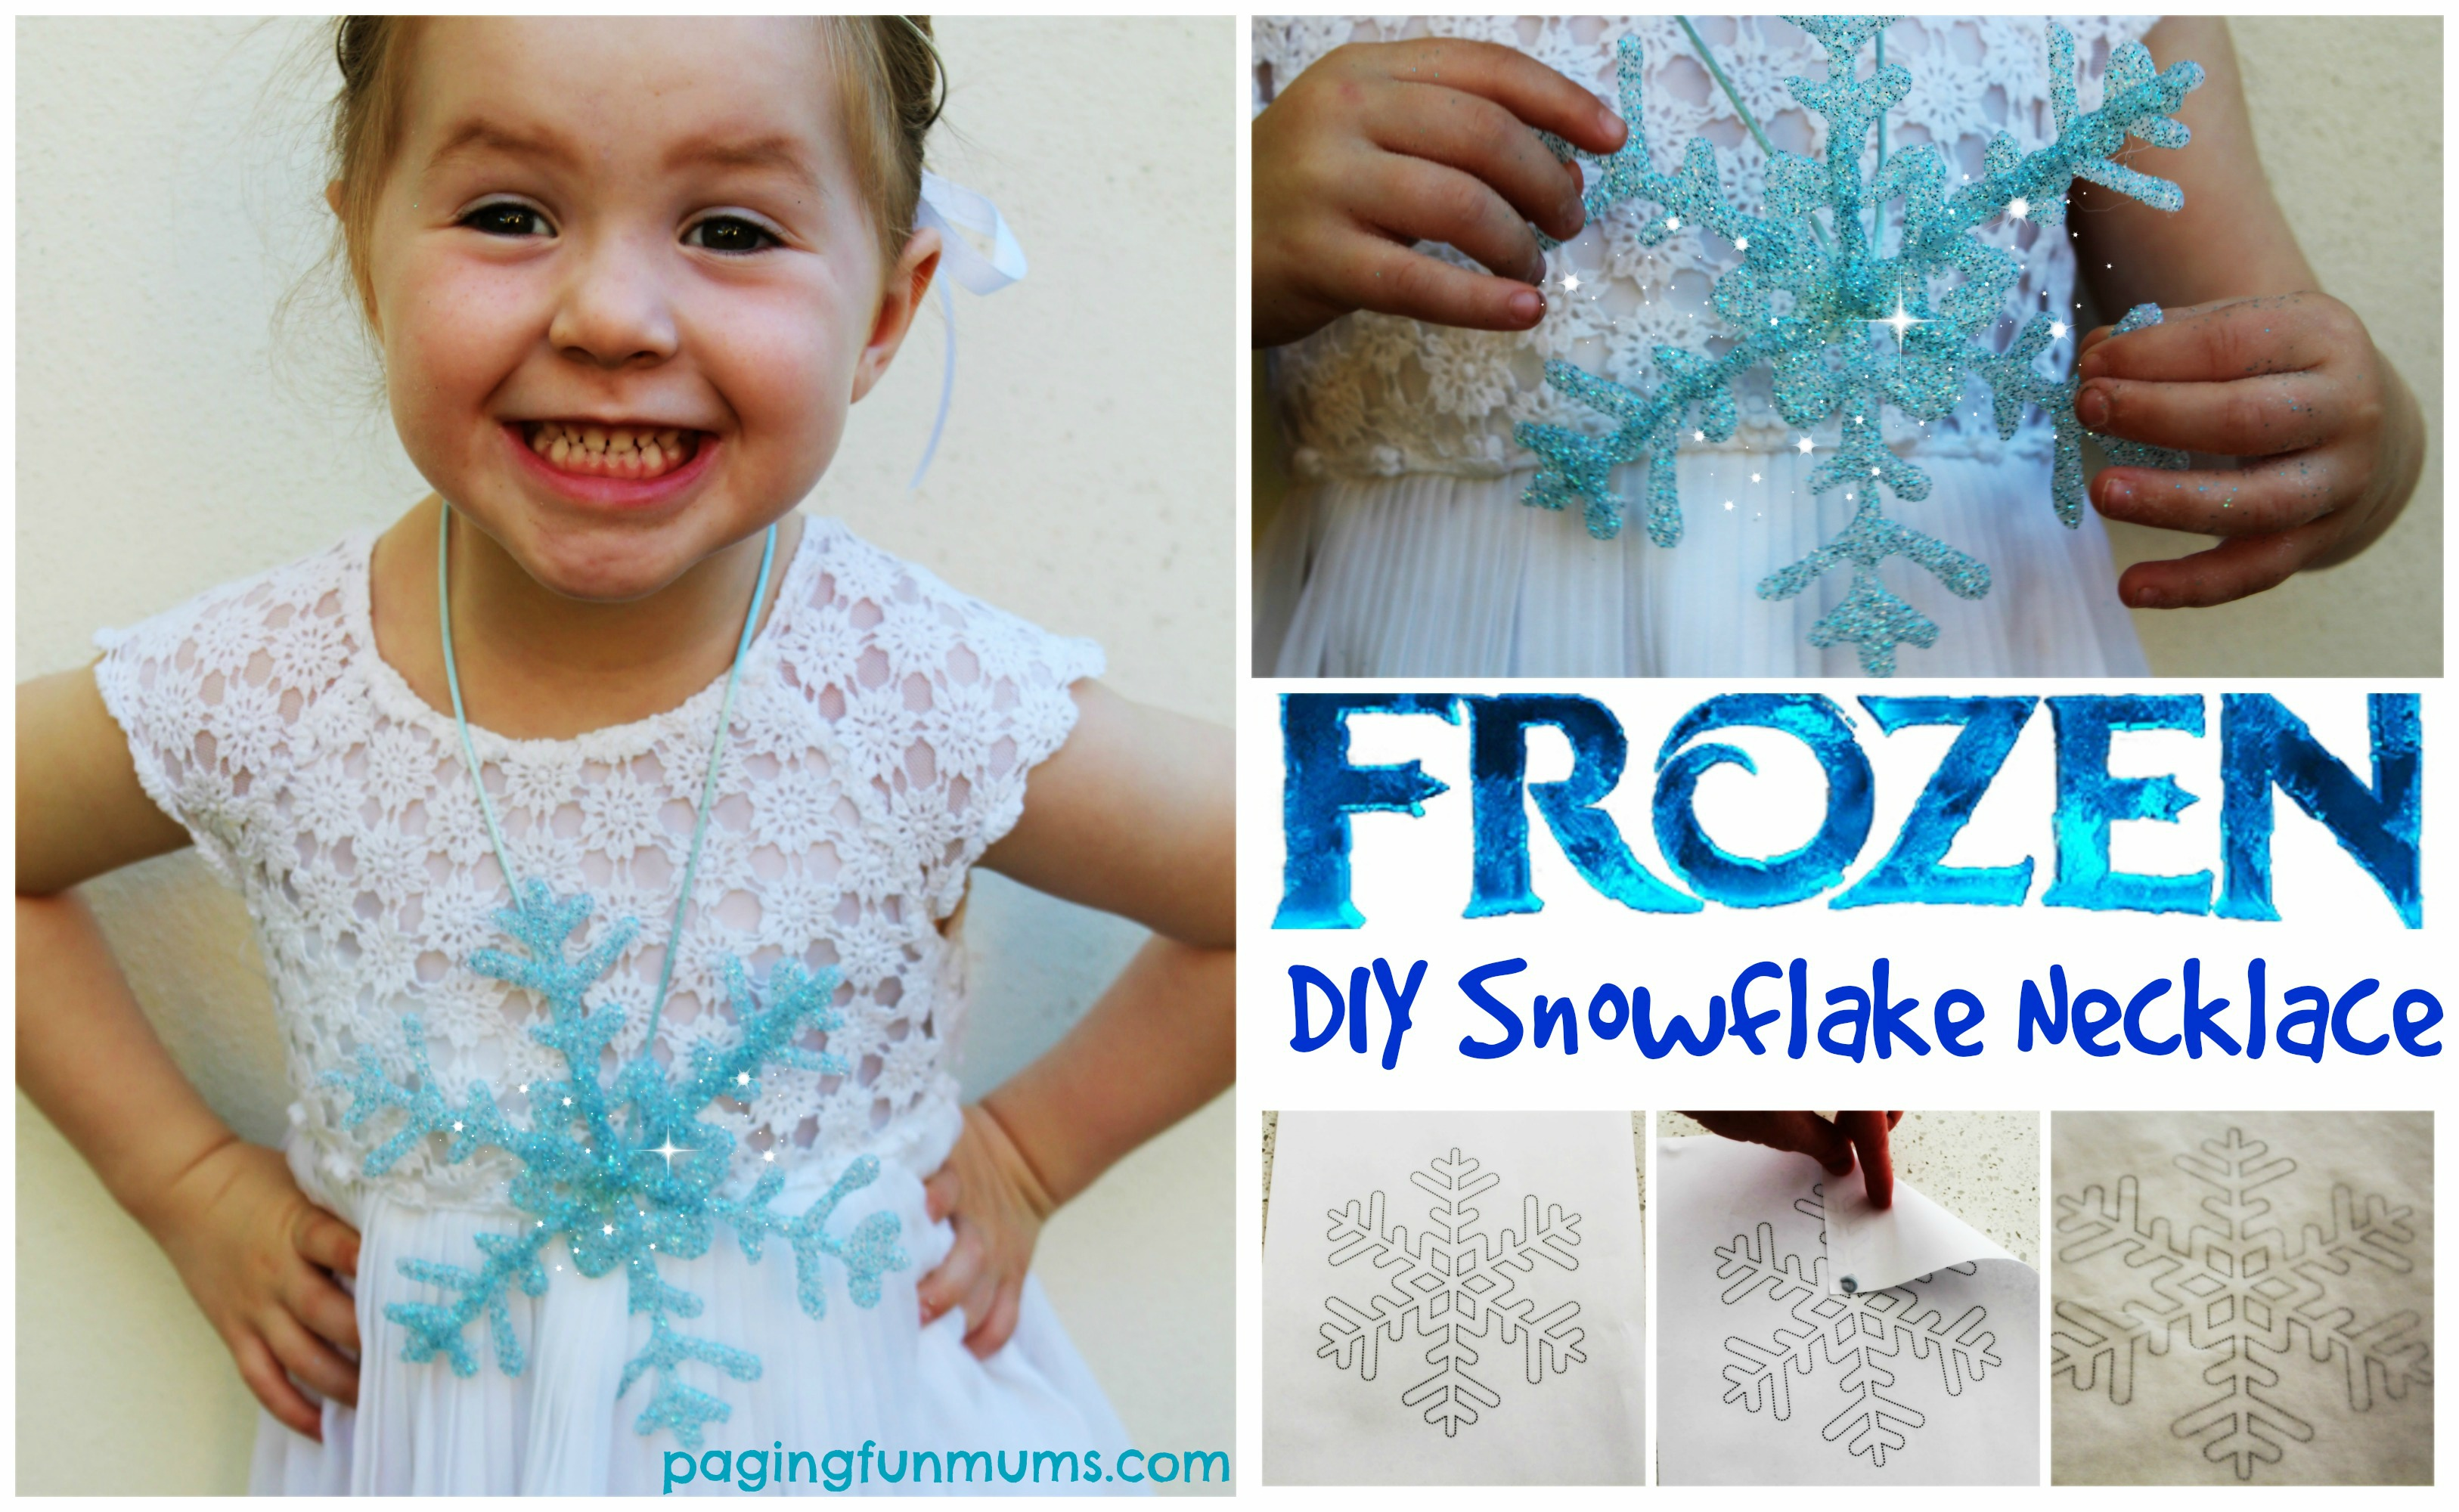 'Frozen' Snowflake Necklace